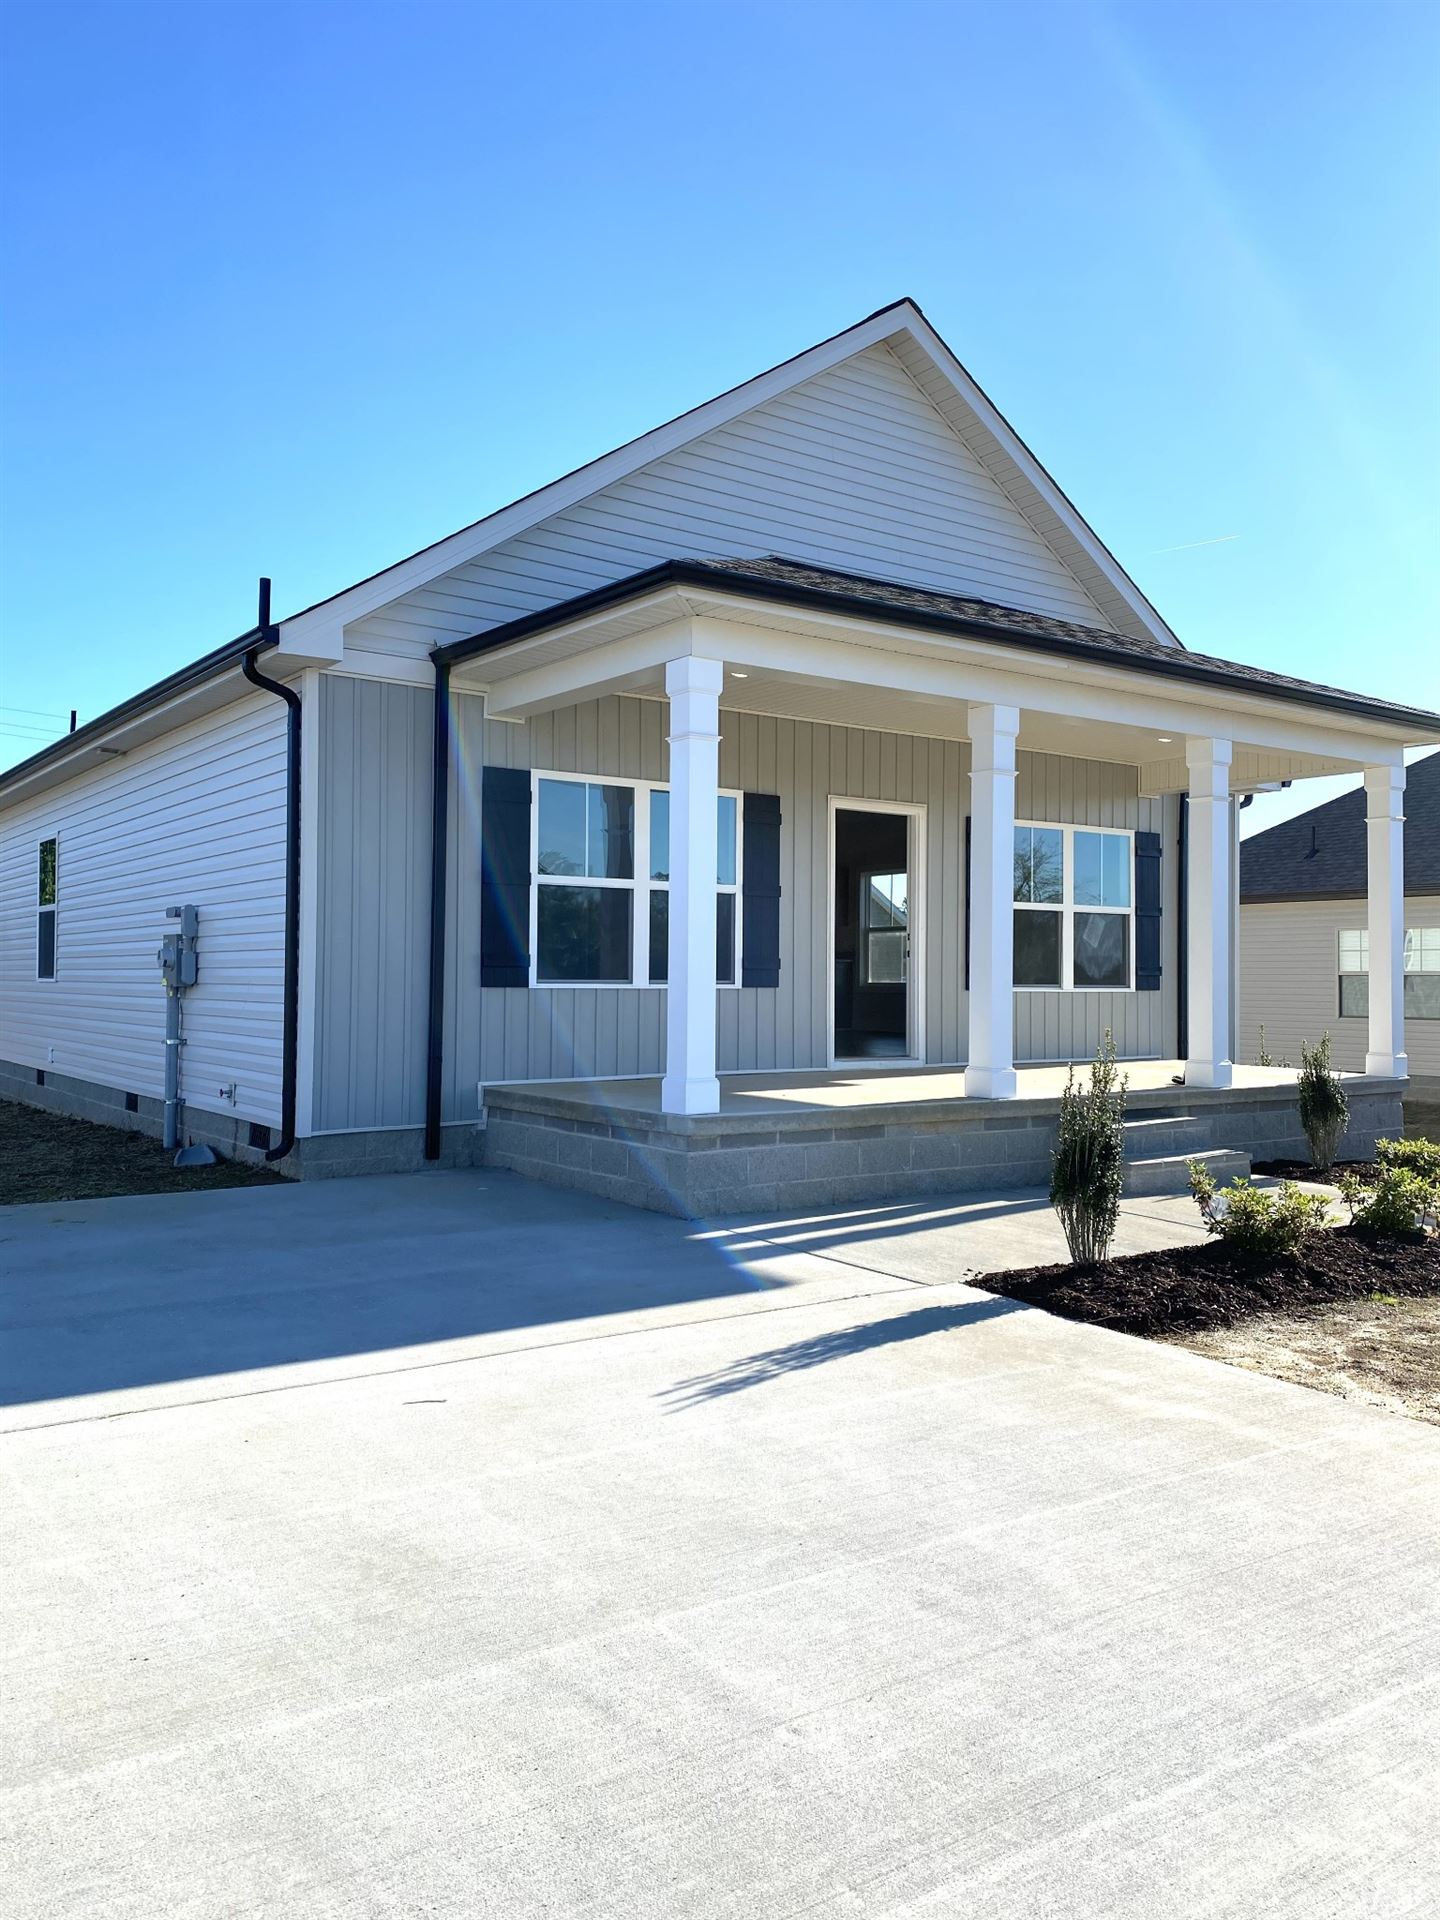 155 Foutch Court, Smithville, TN 37166 - MLS#: 2229752